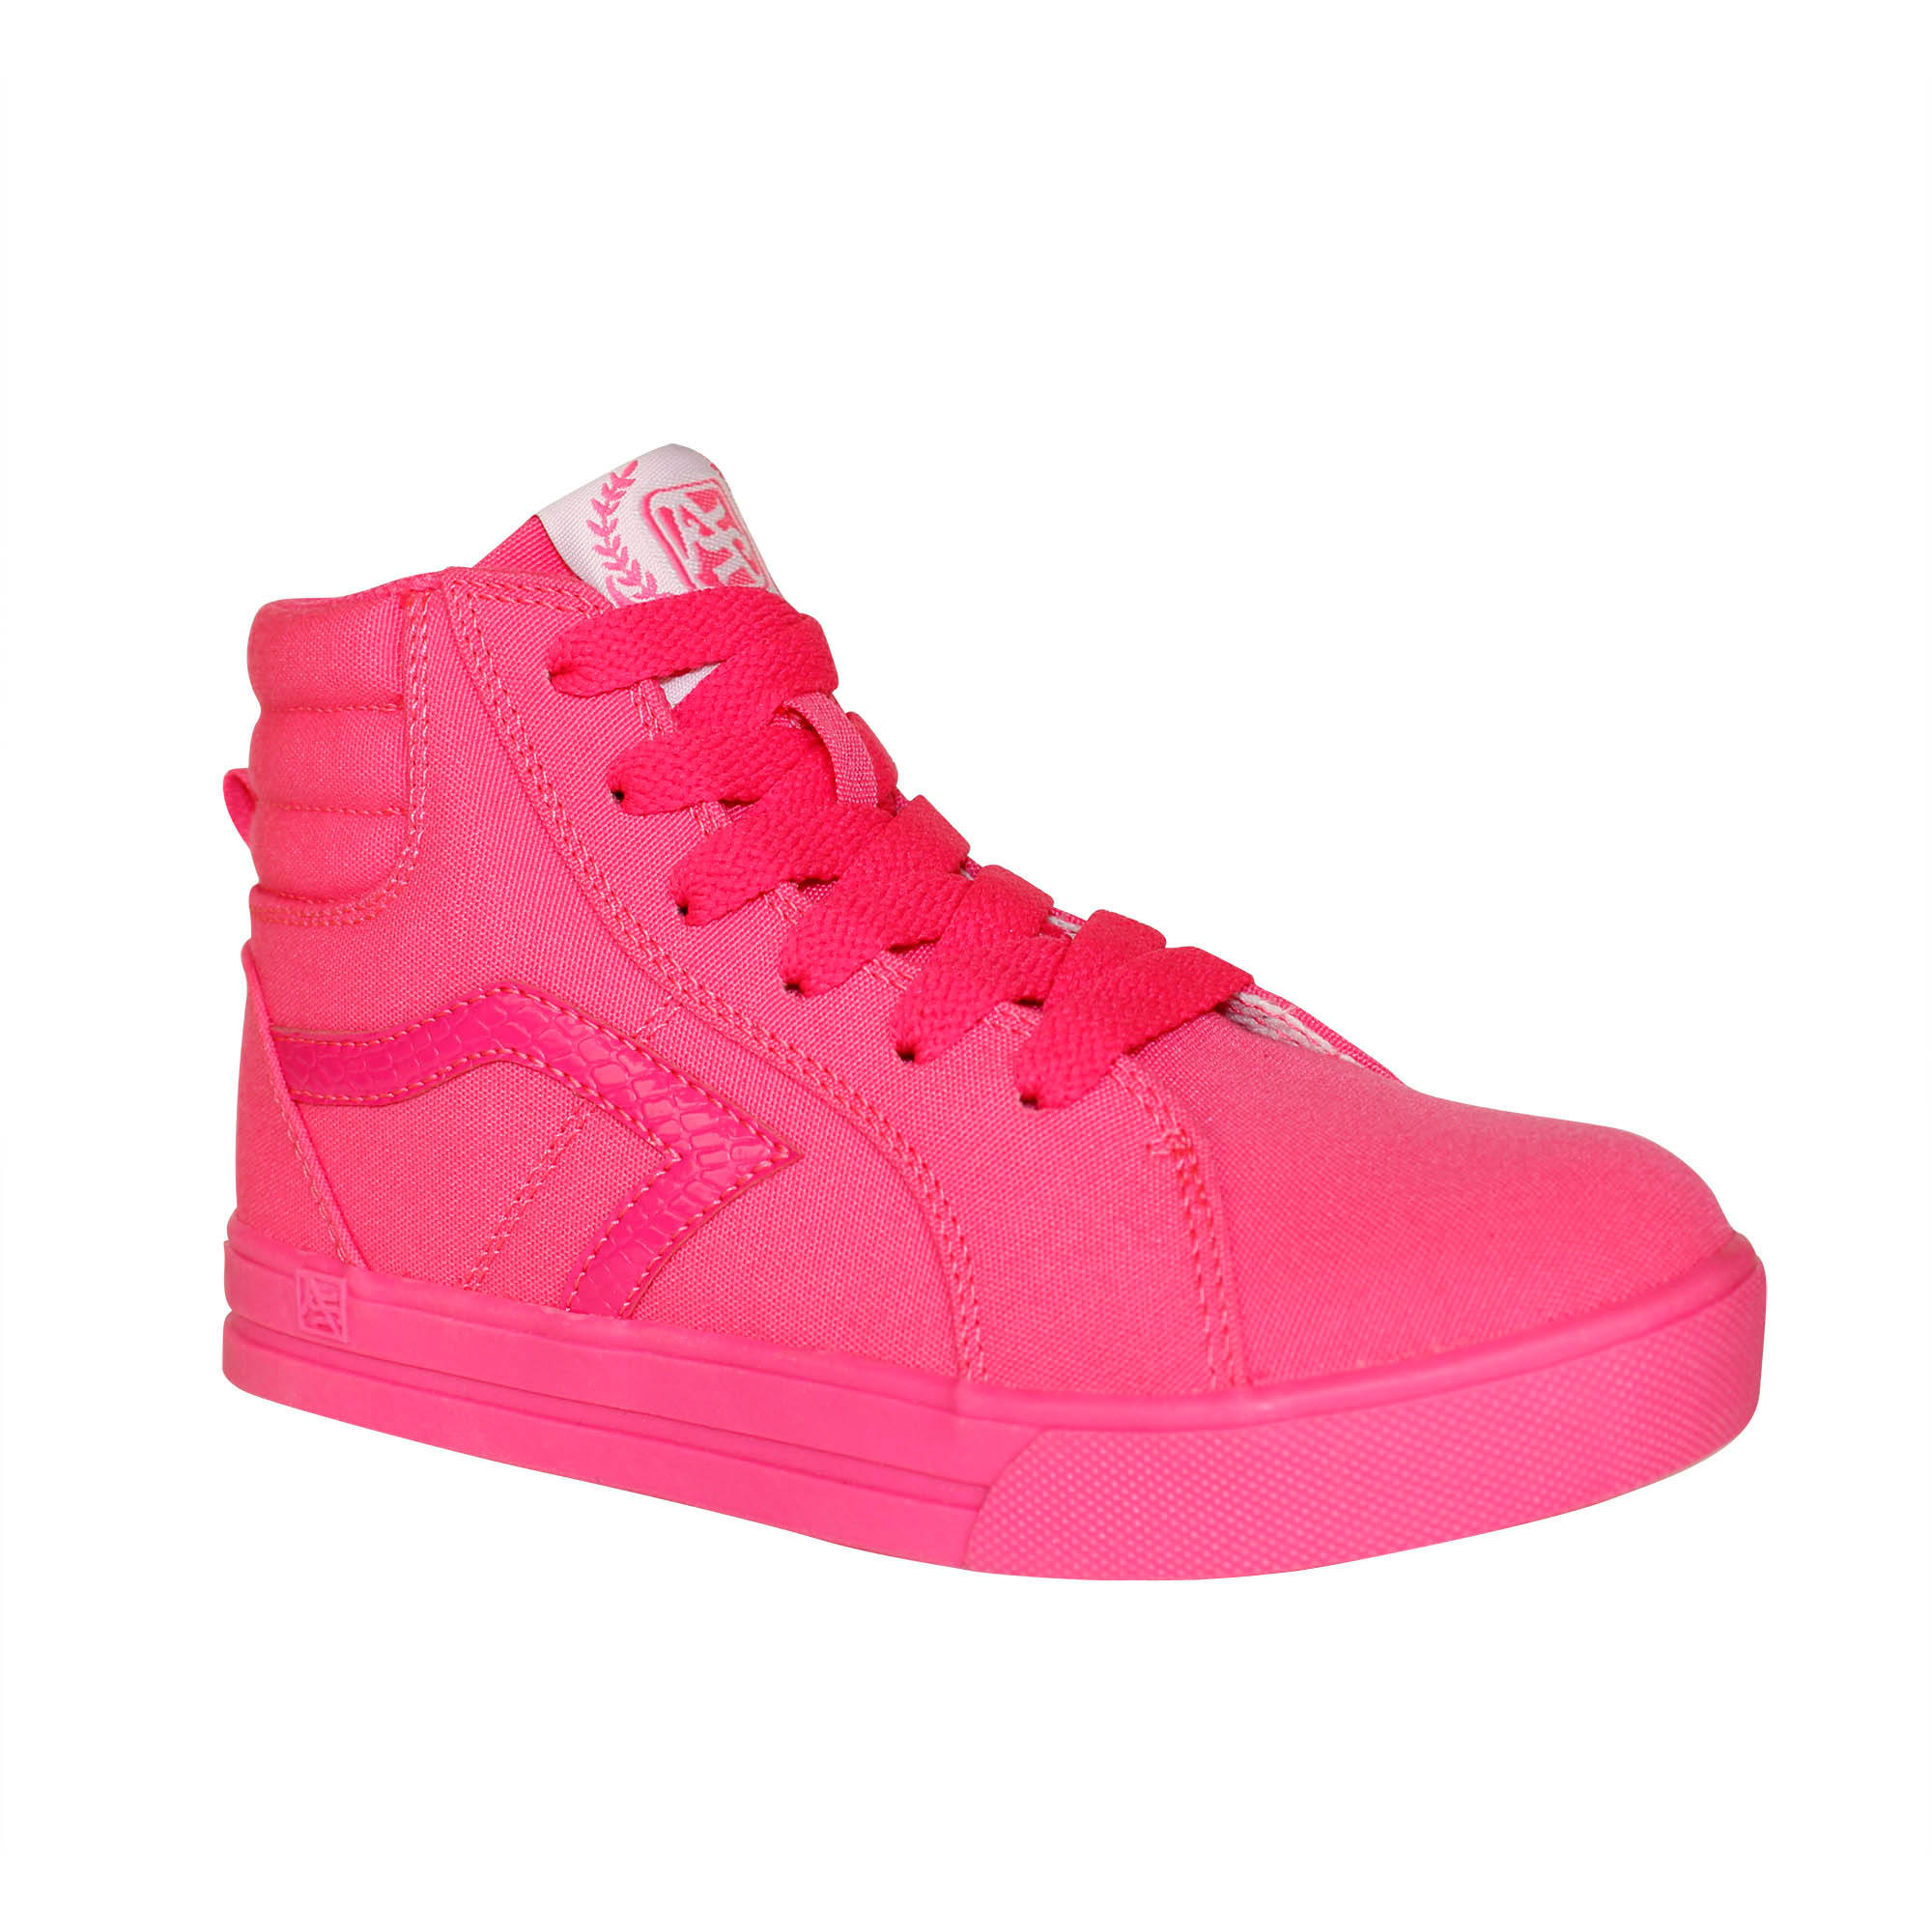 Image of Airspeed Girls Hi-Top Athletic Shoe